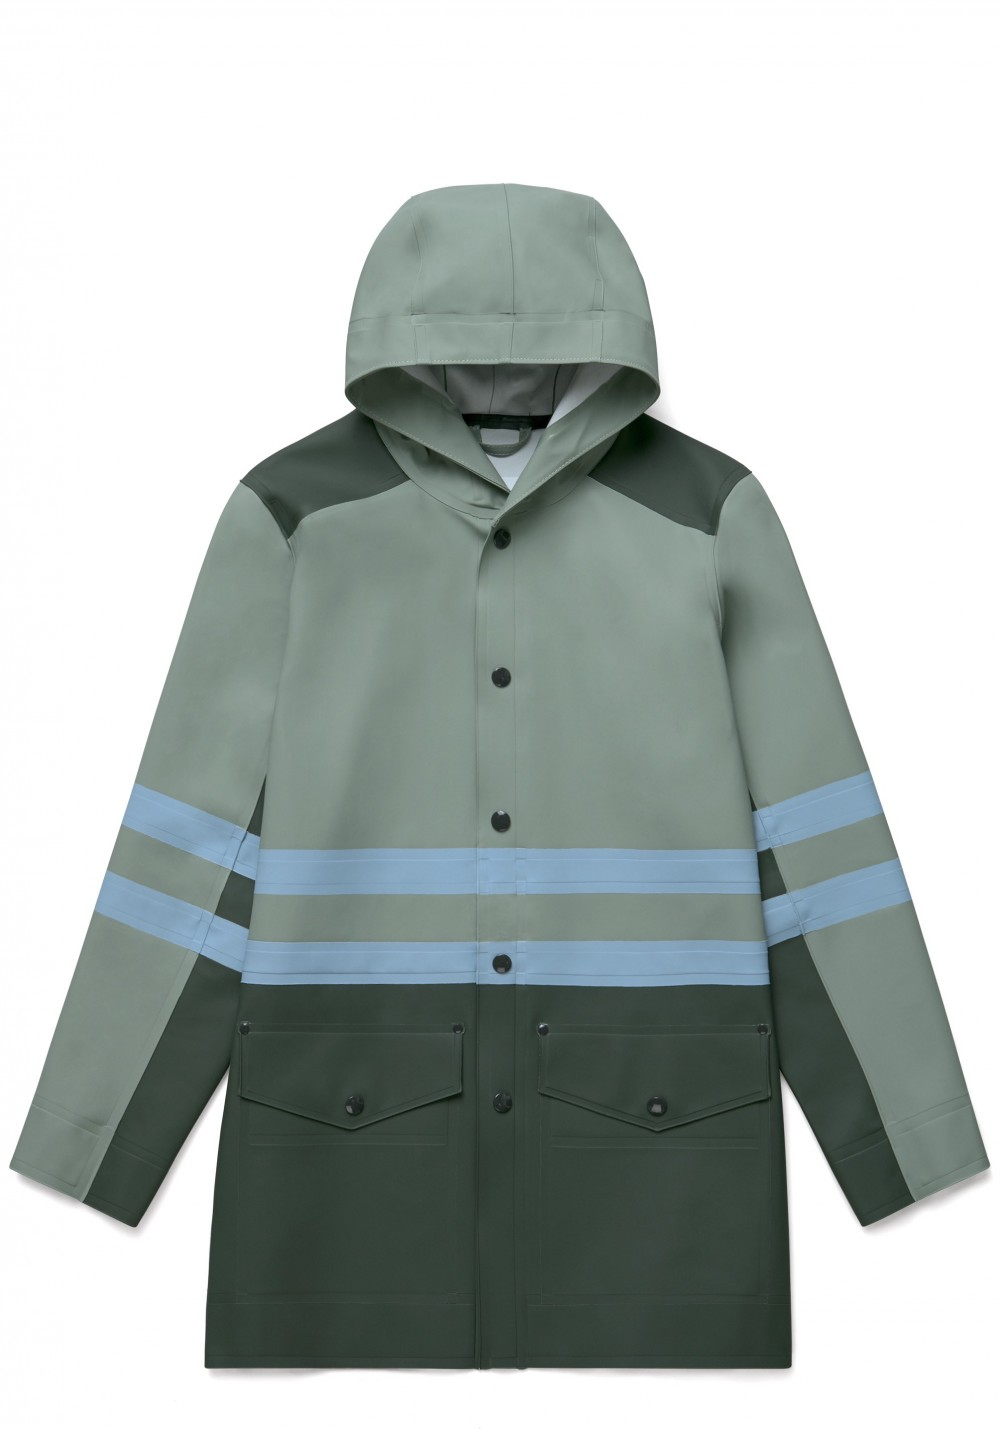 05 Stutterheim for Marni SS18_Man_StripeCoat_KhakiGreenMulti_Product